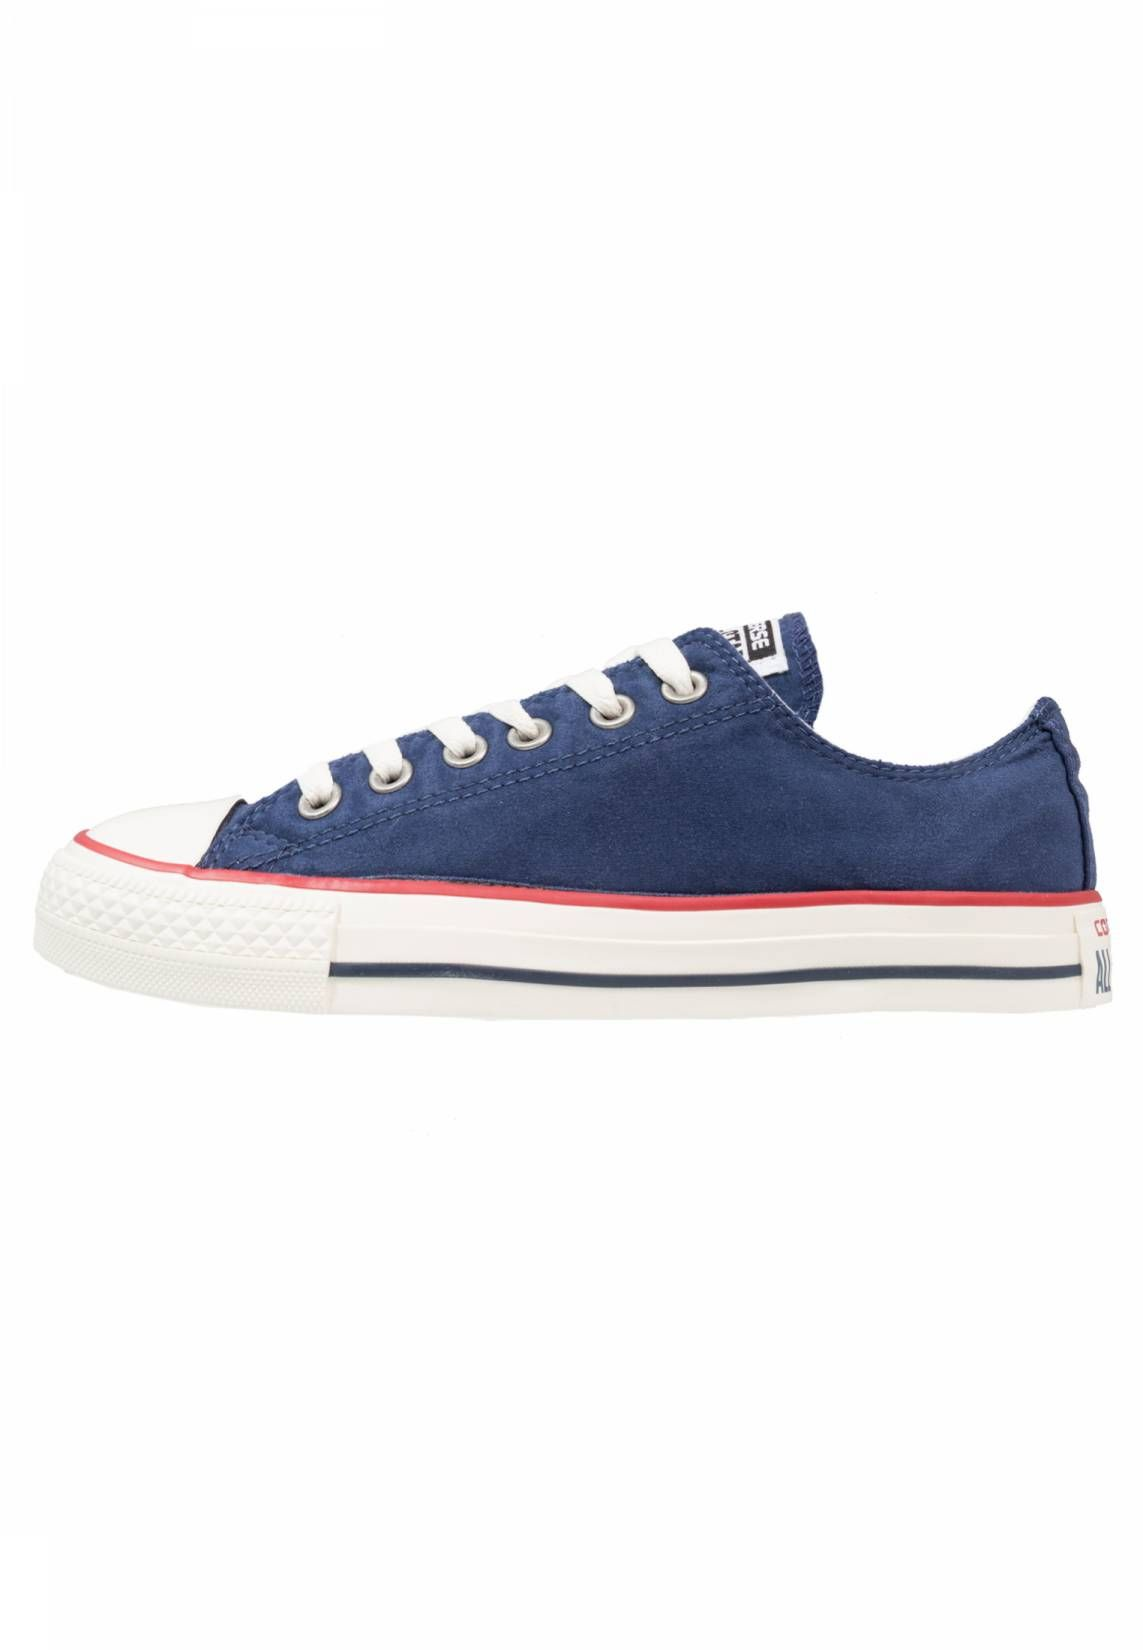 1233a9c7e51e3 Converse. CHUCK TAYLOR ALL STAR OMBRE WASH - OX - Zapatillas - midnight  navy